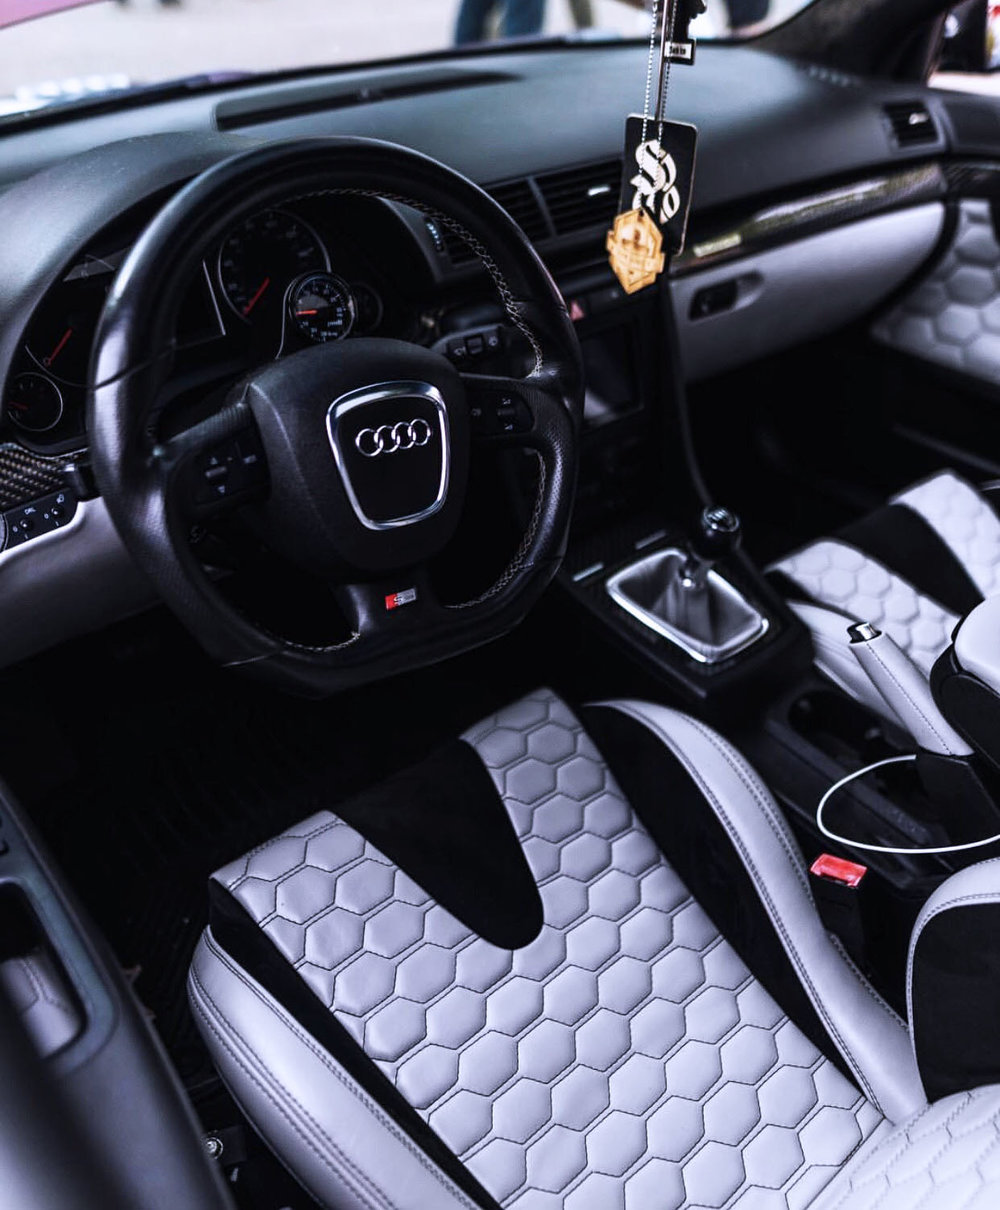 2006 Audi S4 - Full Custom interior - Hexagon Stitching on Silver Leather with black microsuede. Custom wrapped shift boot and matching door panels.